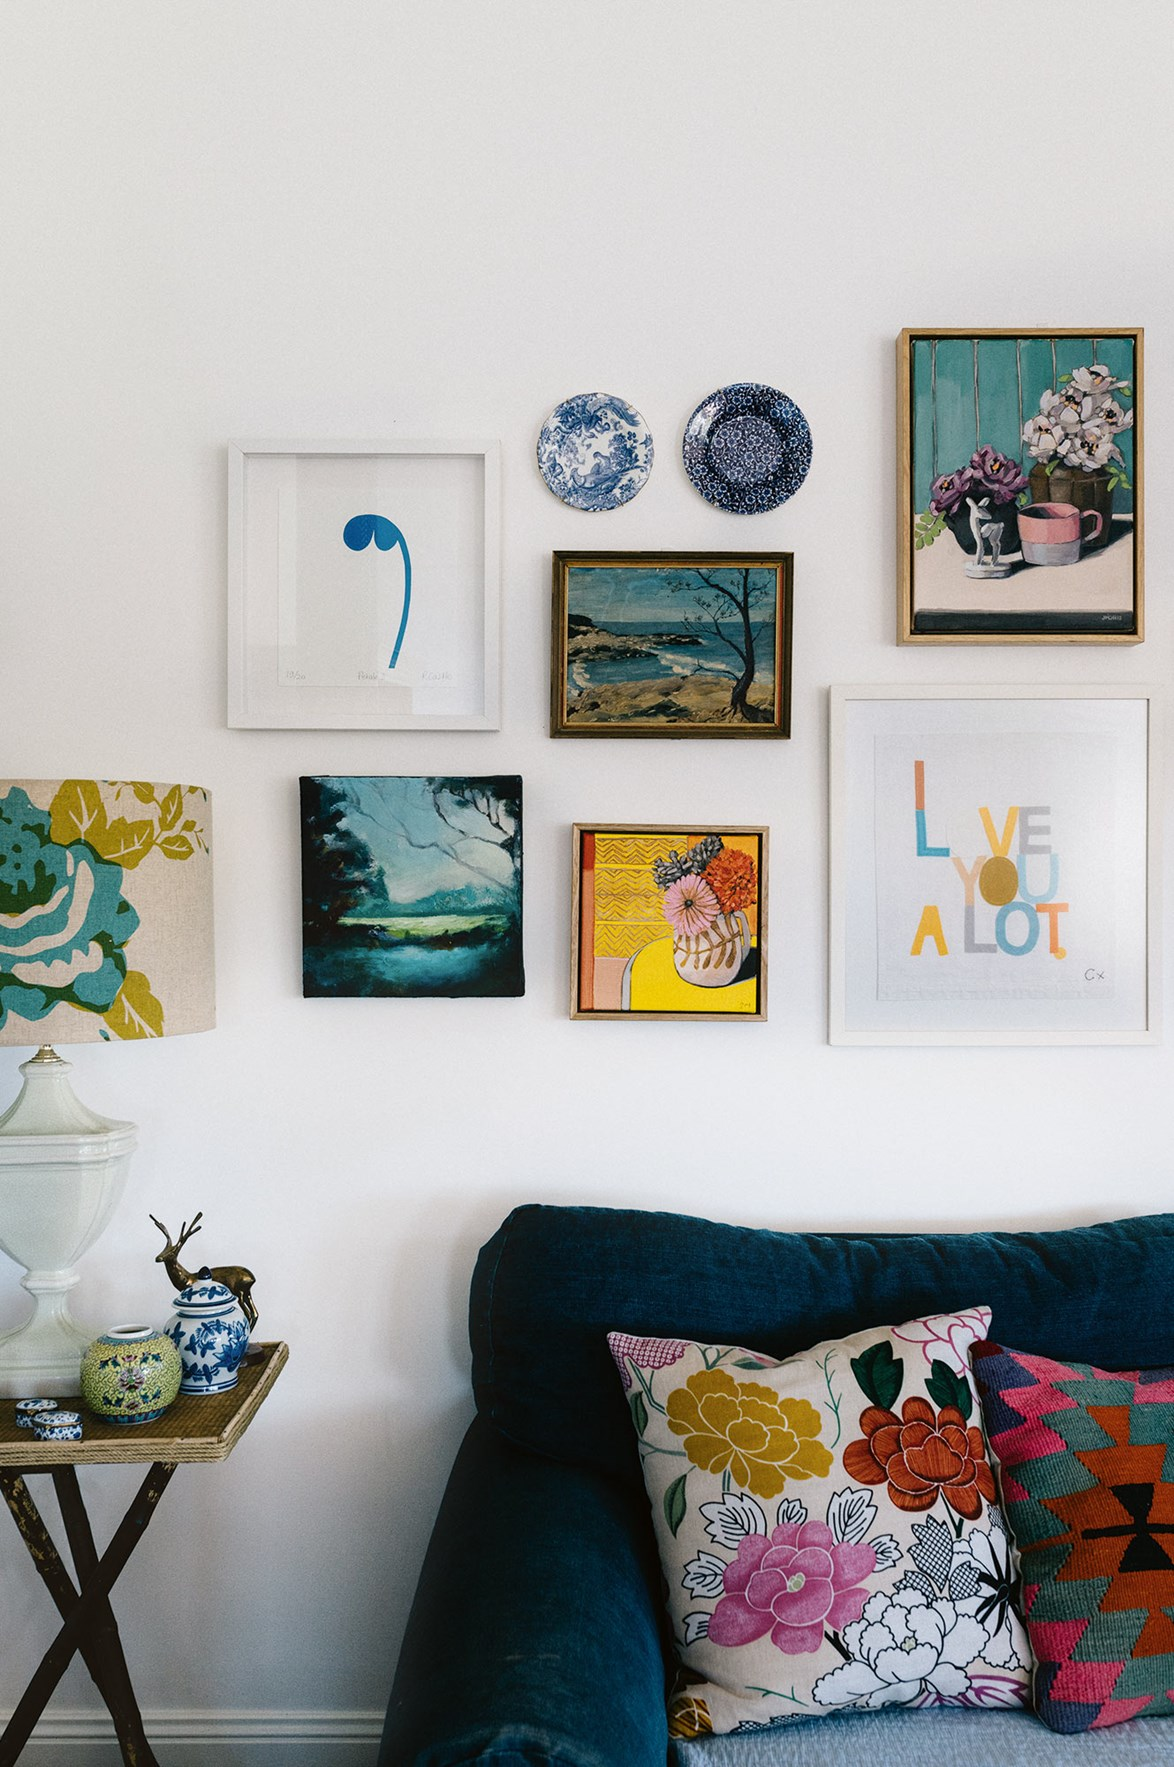 "<p>**ADD ART** <P>So you've got amazing furniture, you've re-jigged your homewares and introduced layers of texture and colour, but feel like something is still … missing? It could be a lack of artwork. [Artwork is the most powerful decorating tool](https://www.homestolove.com.au/decorating-with-art-19078 |target=""_blank"") and once you notice the difference you'll never go back. Invest in a single statement piece or try creating a gallery wall.<p>  <p>*Photo: Marnie Hawson*<p>"